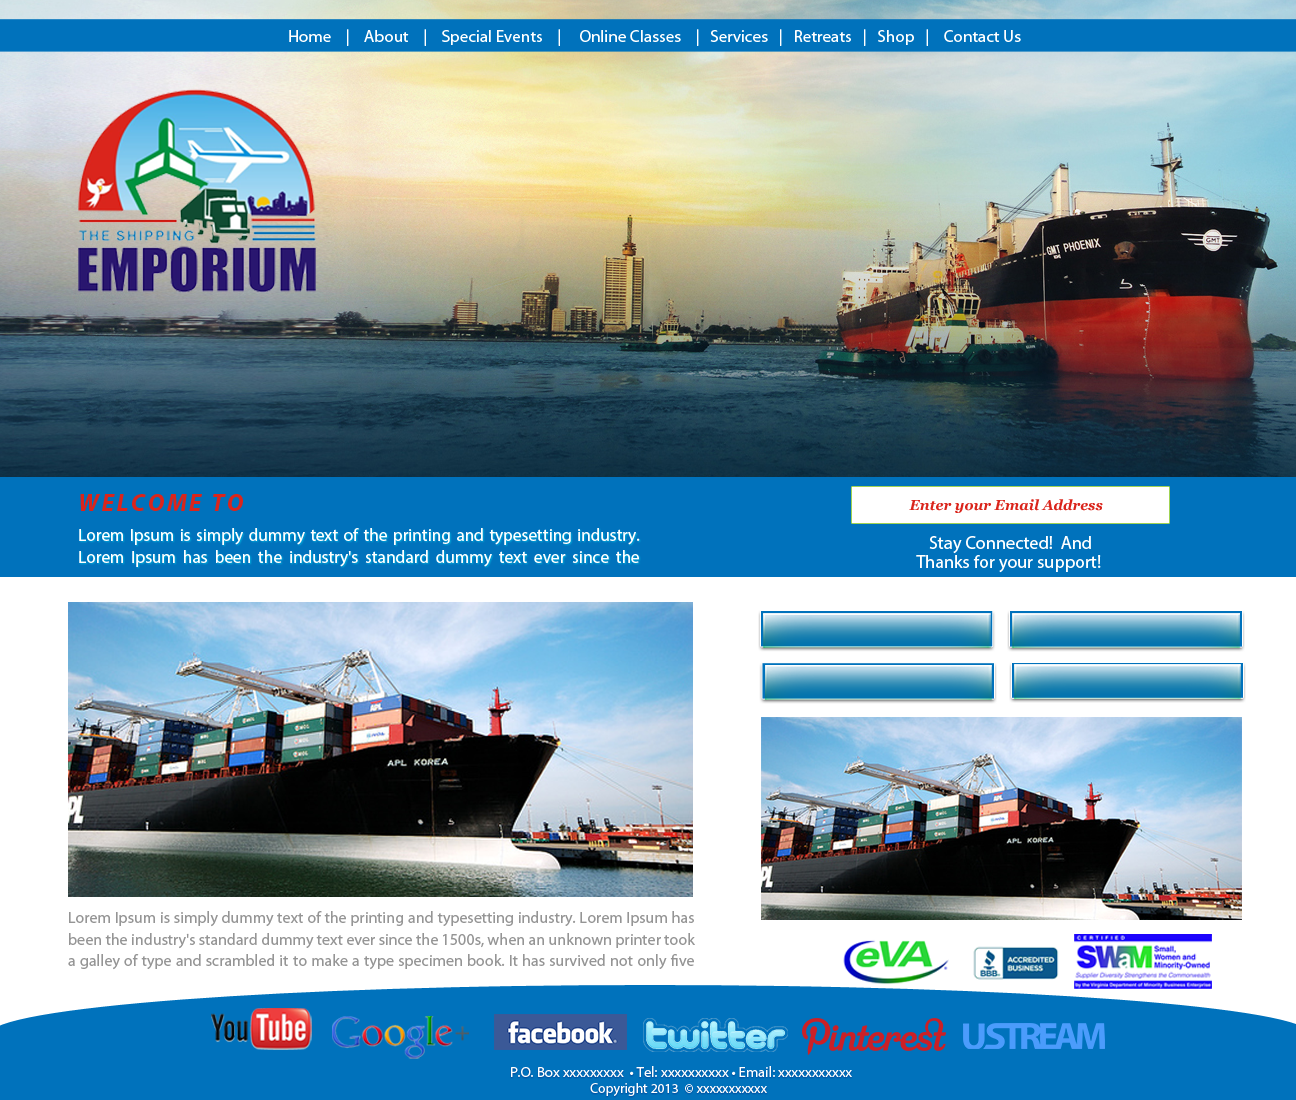 Web Page Design by zesthar - Entry No. 78 in the Web Page Design Contest Artistic Web Page Design for The Shipping Emporium Website.